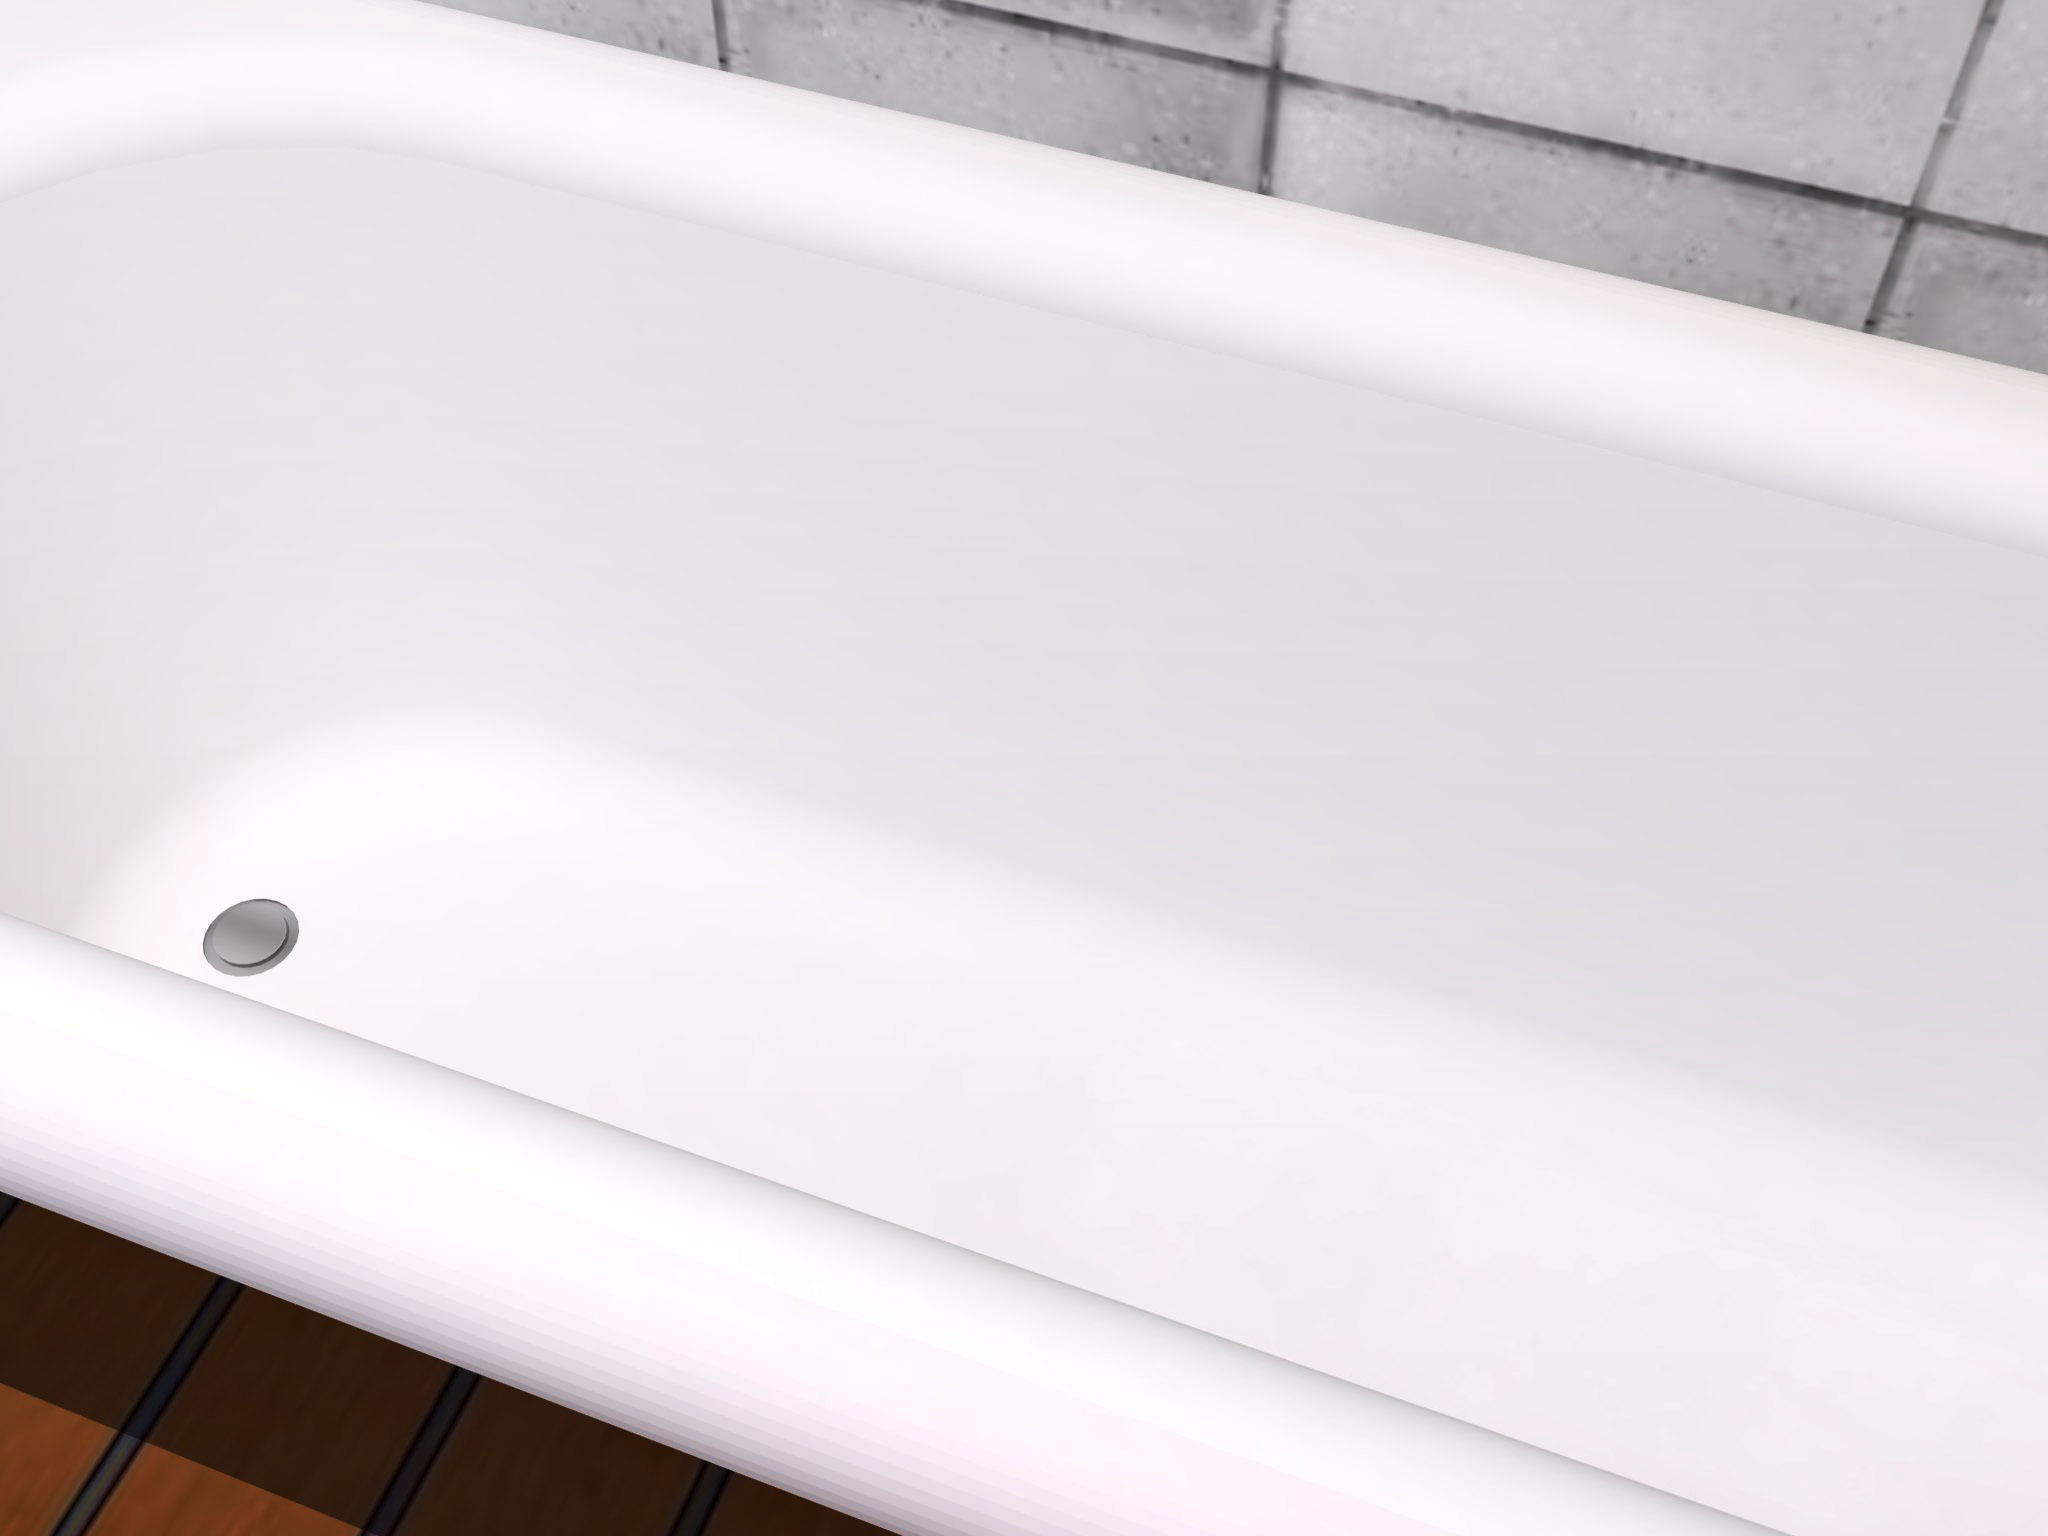 How to Repair a Fiberglass Tub or Shower: 15 Steps (with